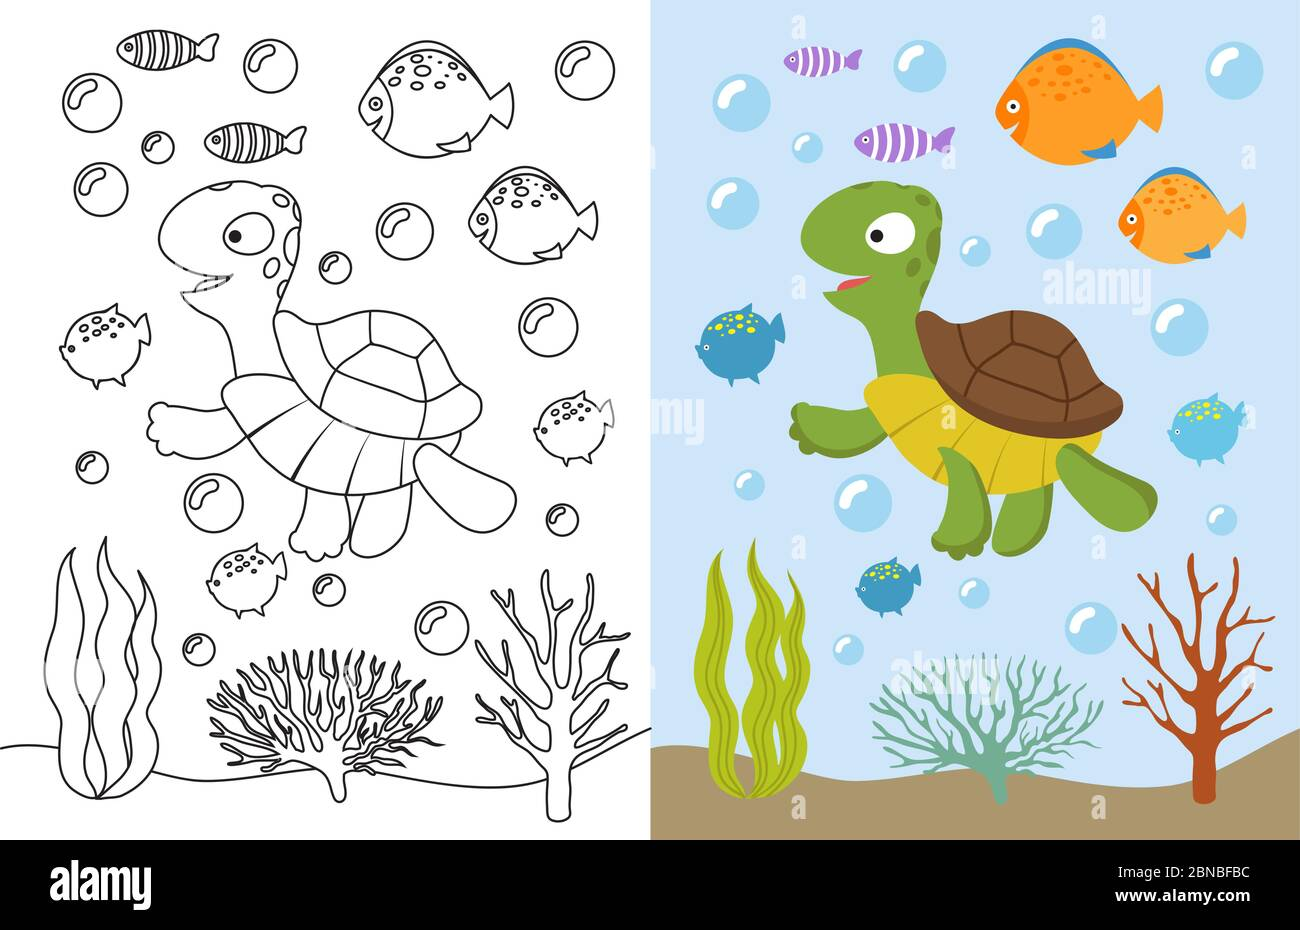 Turtle Coloring Pages Cartoon Swimming Sea Animals Underwater Vector Illustration For Kids Coloring Book Underwater Sea Turtle Animal And Fish Stock Vector Image Art Alamy